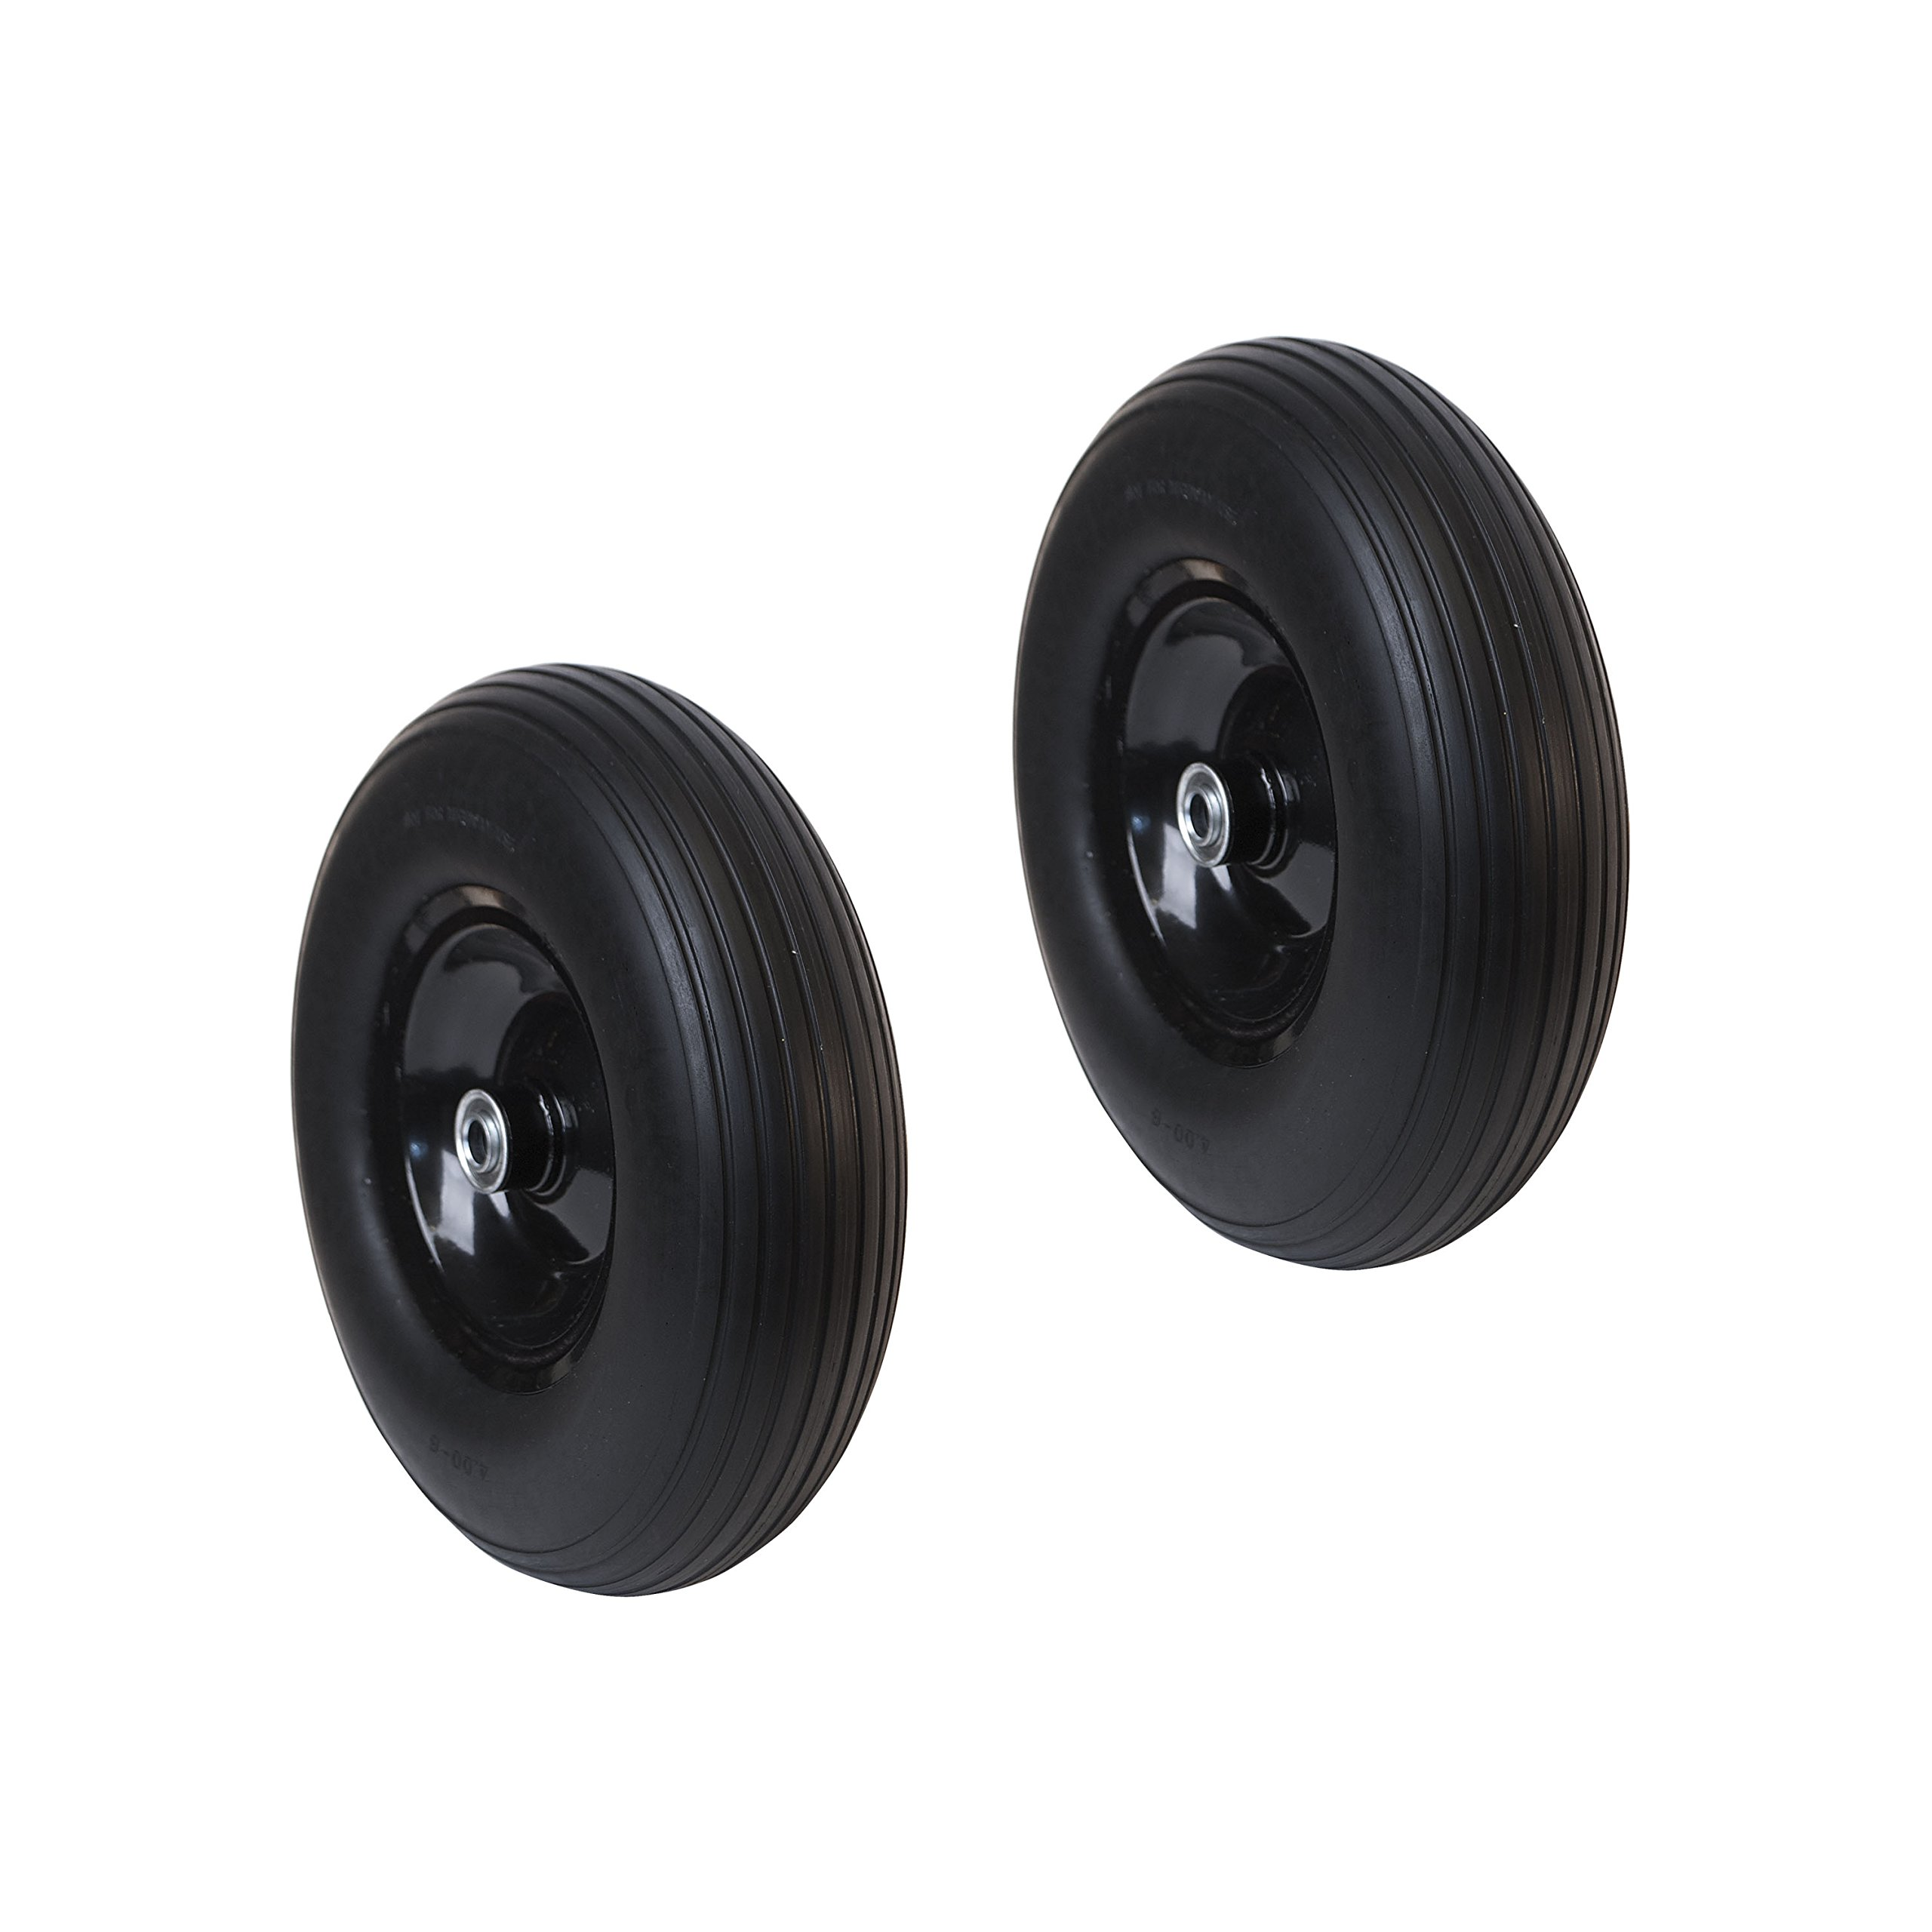 ALEKO 2WBNF13 Anti Flat Ribbed Replacement Wheel for Wheelbarrow 13 Inches No Flat Tire Black Lot of 2 by ALEKO